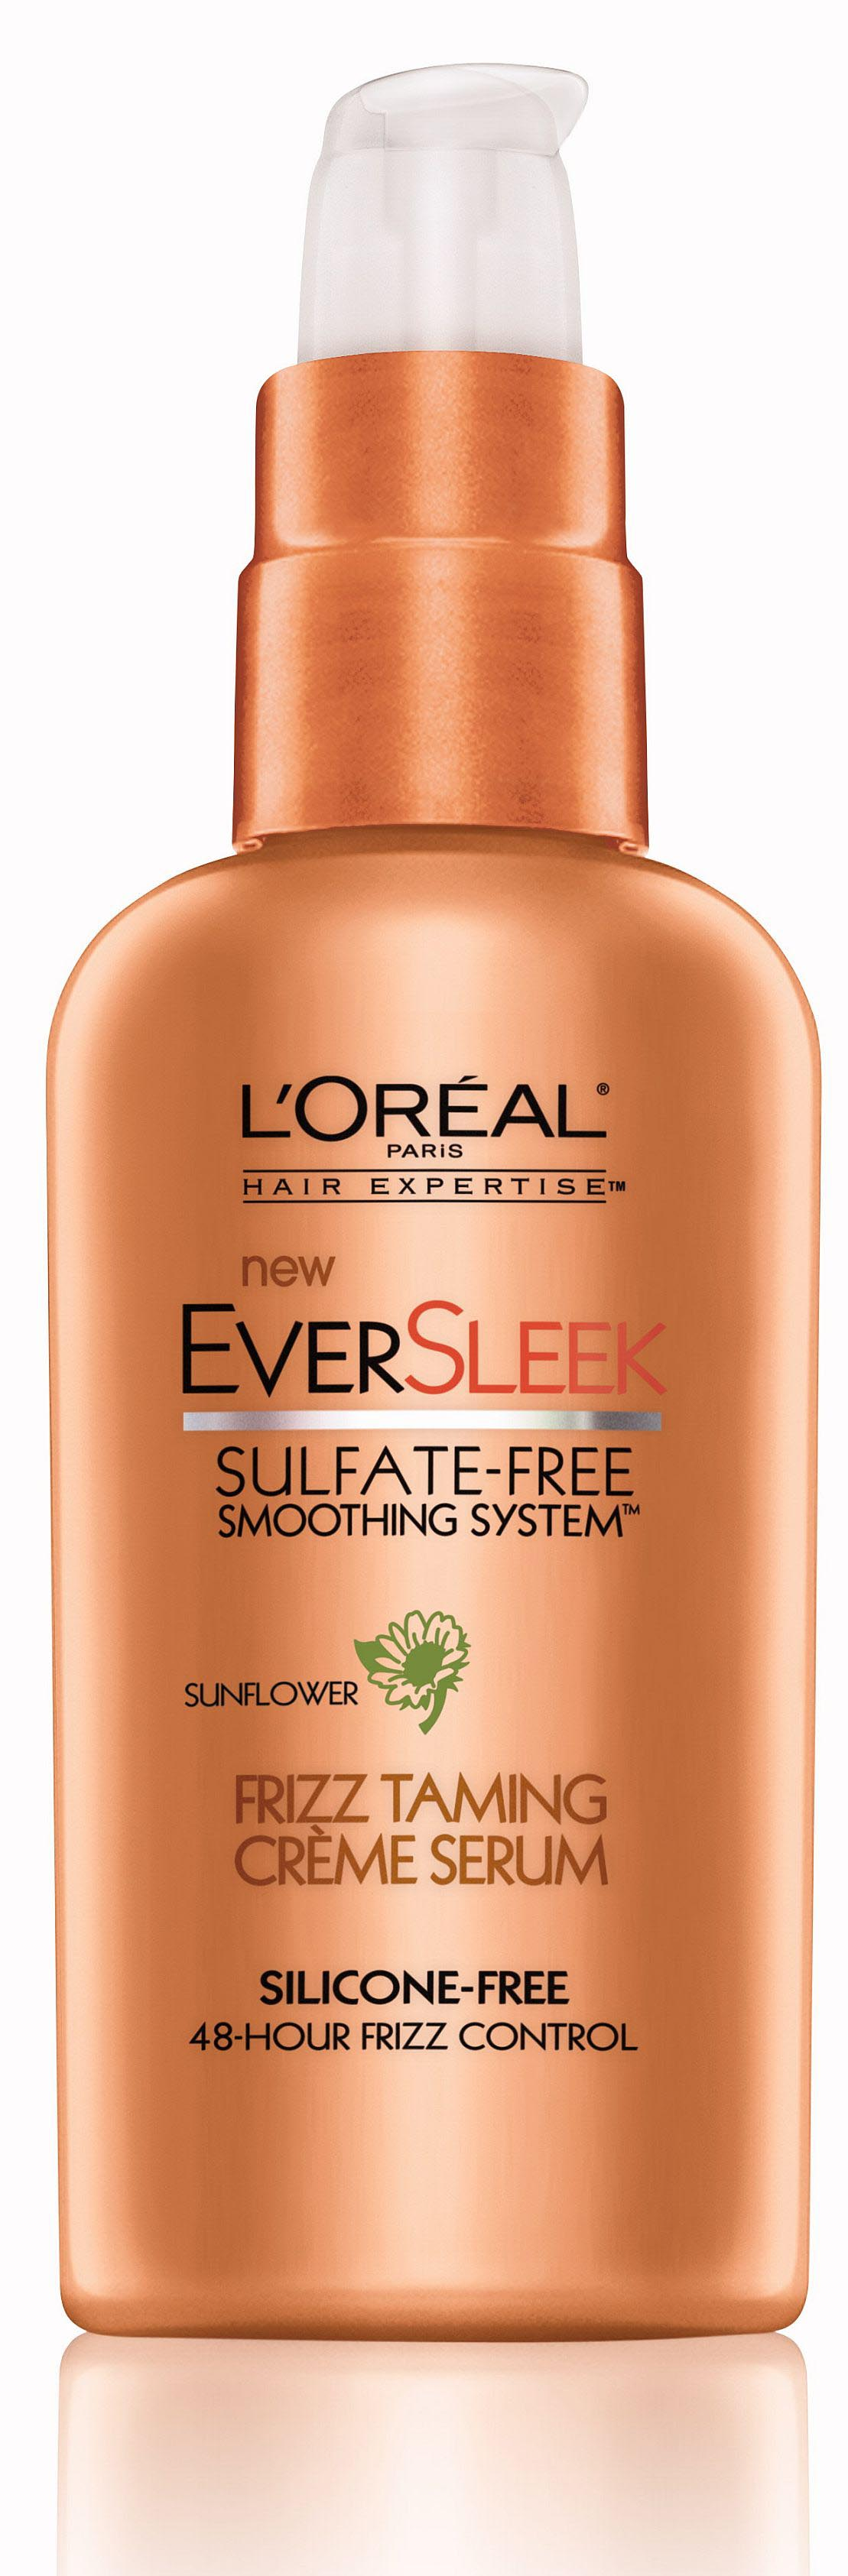 L'Oreal EverSleek Sulfate-free Smoothing System ...